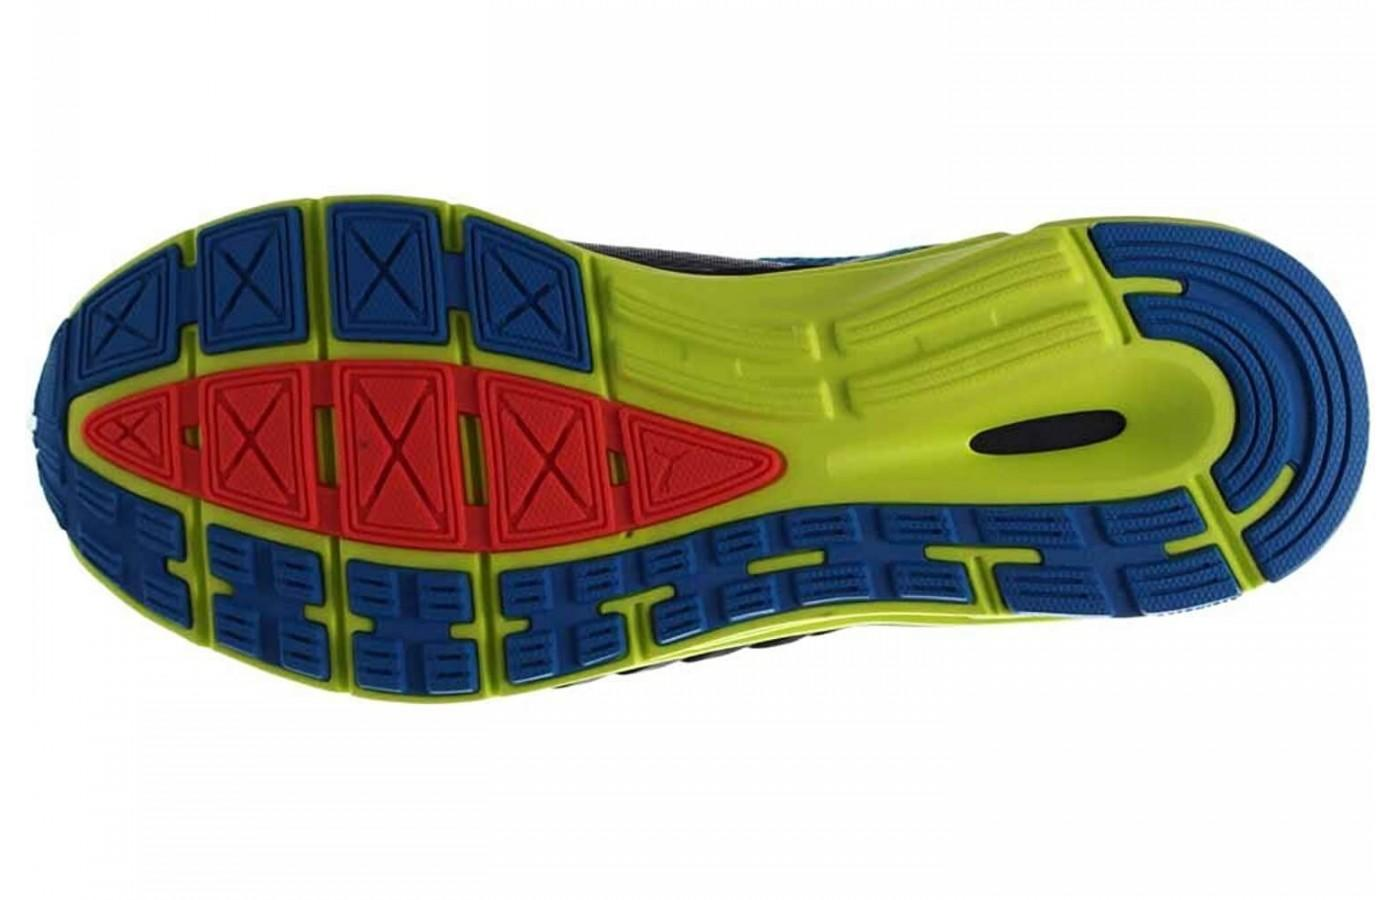 d74032f3c2 ... Puma Speed 500 Ignite has an Evertrack+ outsole ...